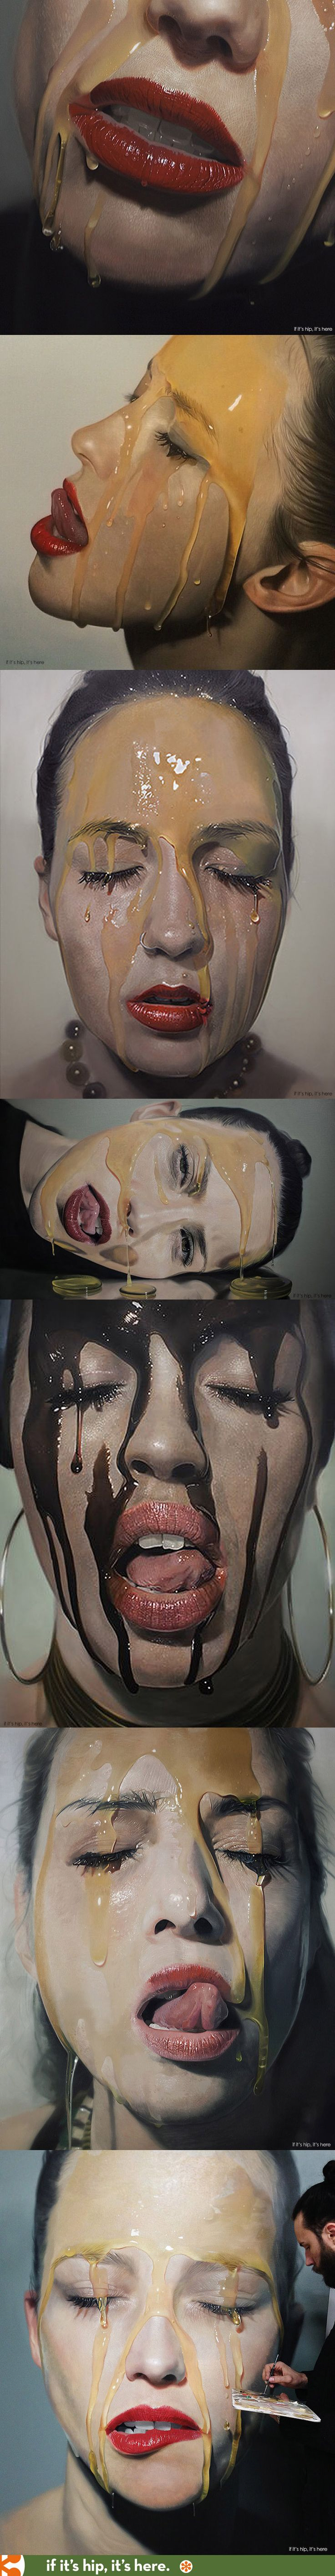 The seductive hyper-realistic oil paintings of Mike Dargas.